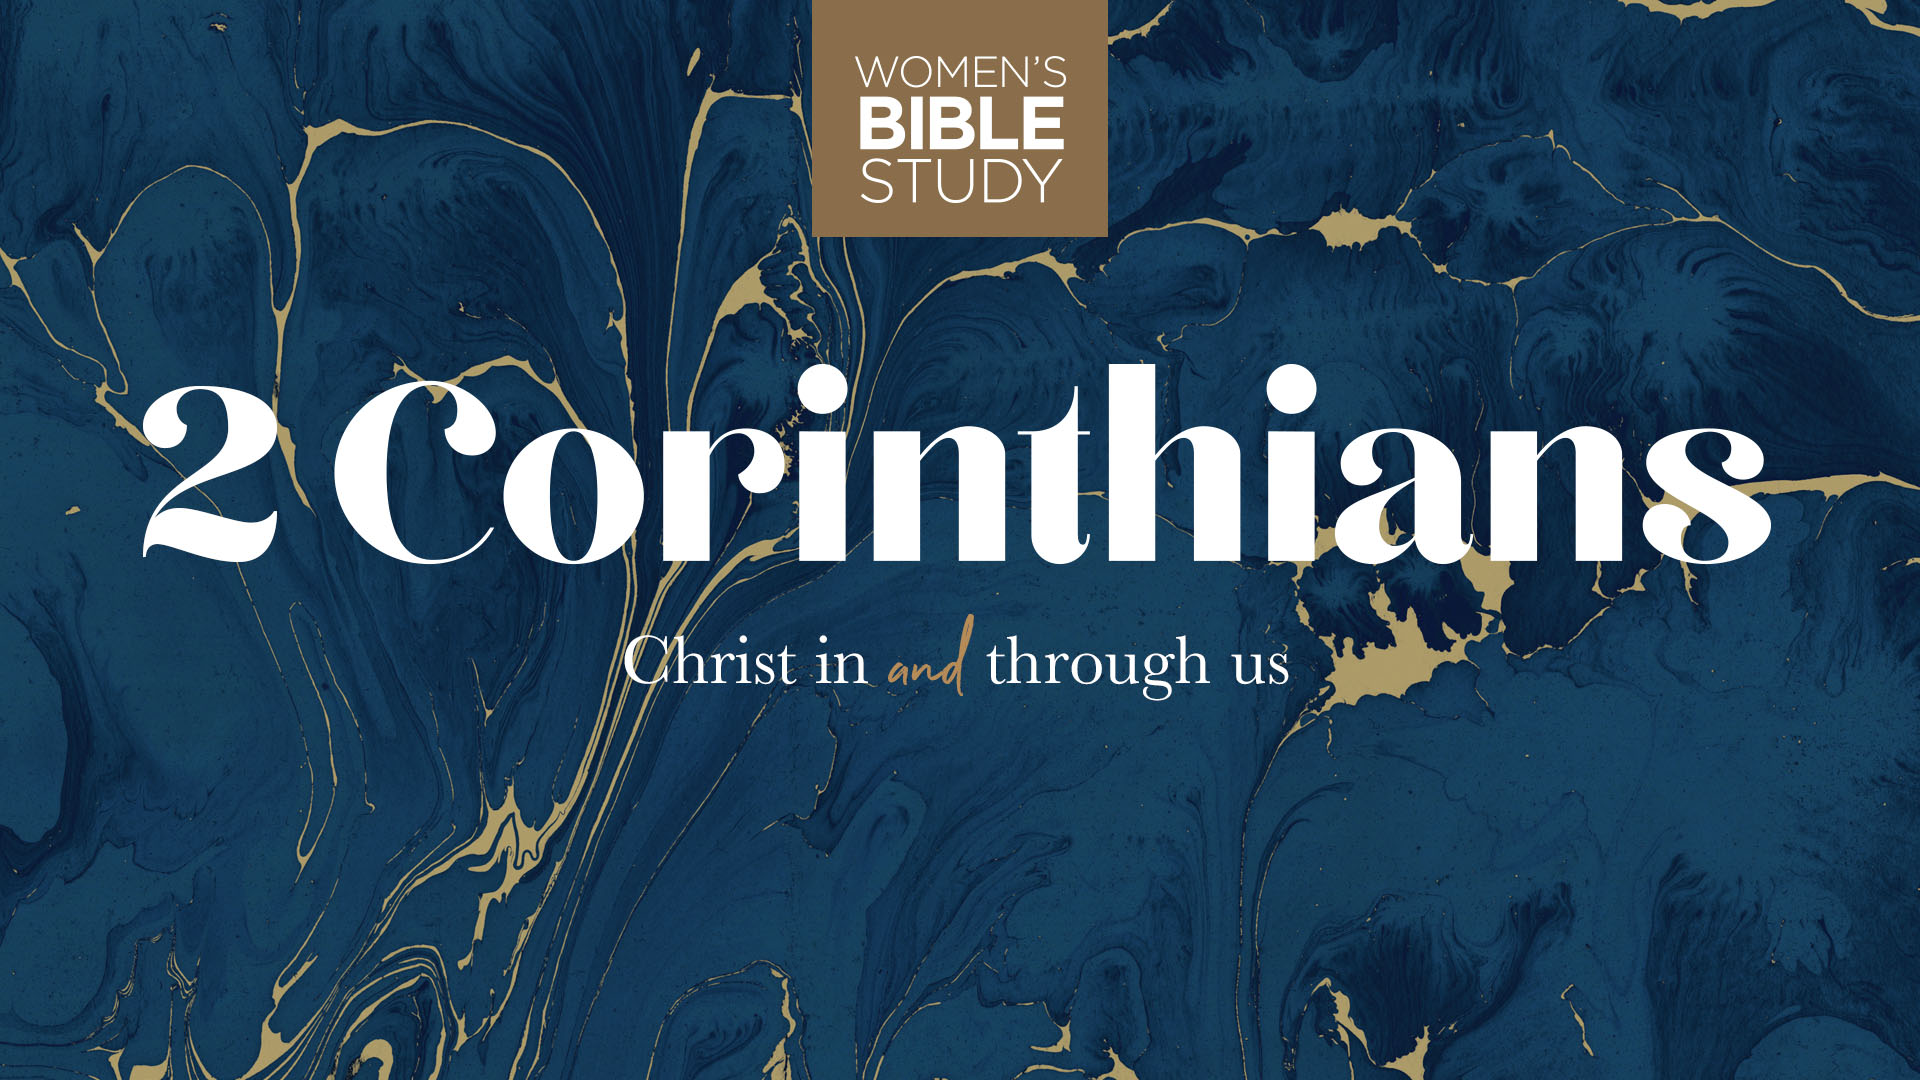 2 Corinthians 1:1-2 - To the Church of God at Corinth